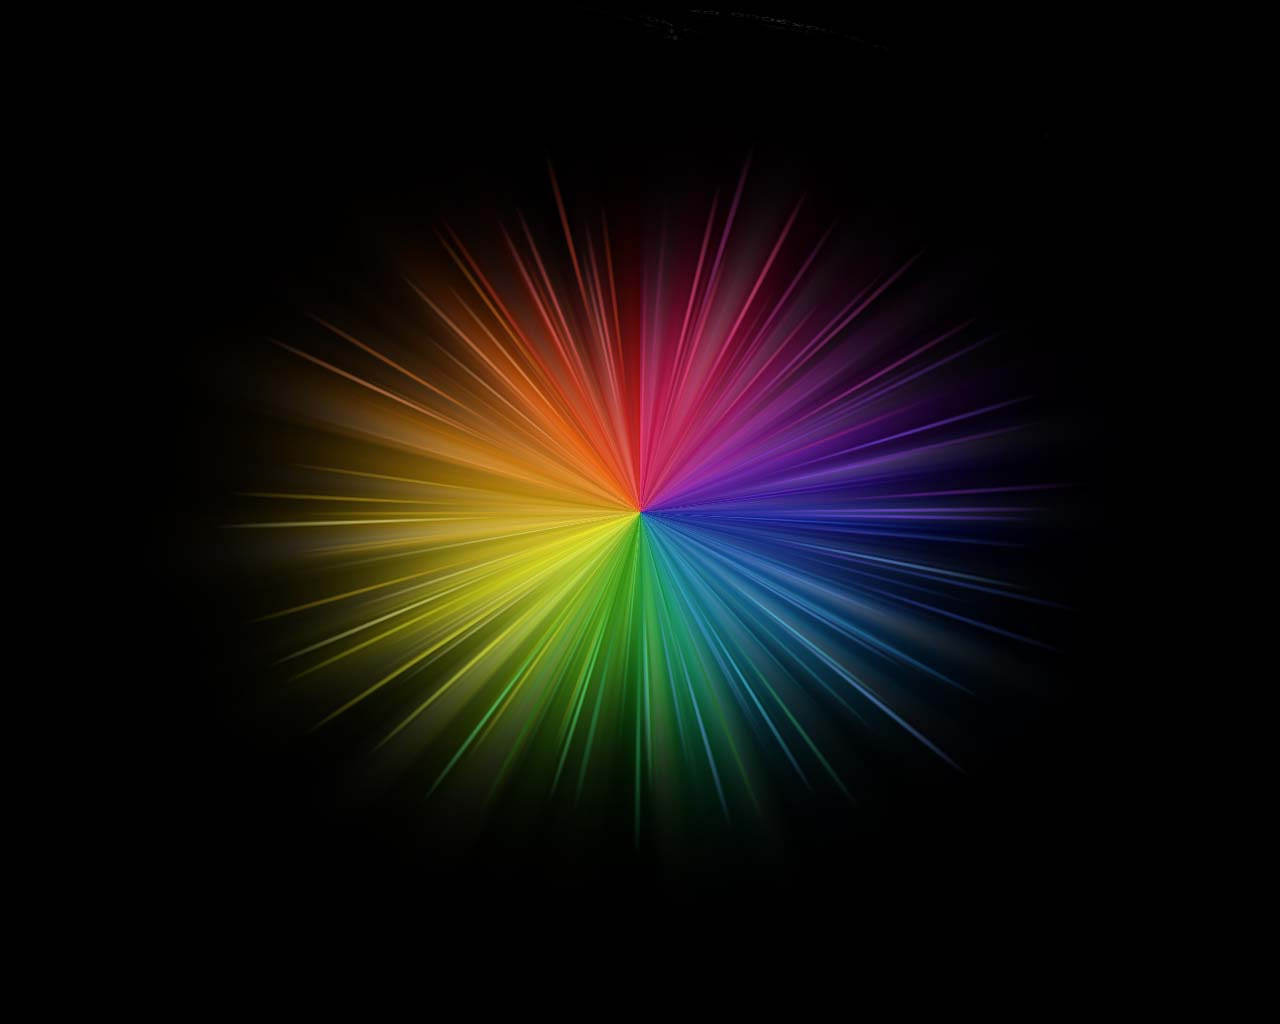 abstract-rainbow background